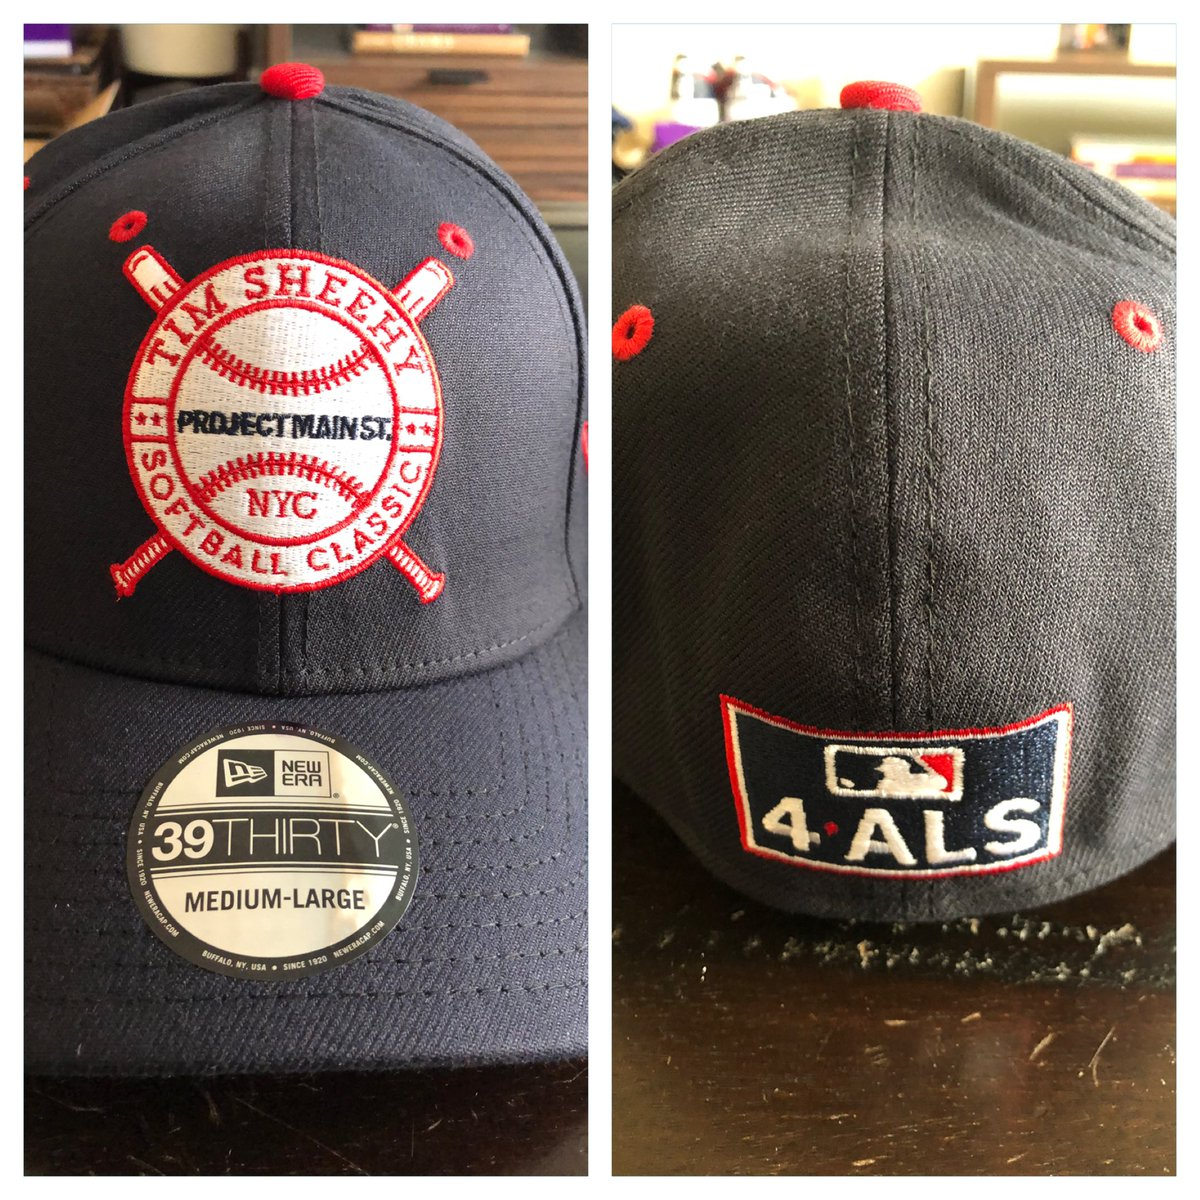 """Crowdsourcing...Thinking of selling our @NewEraCap @PMS4ALS hats with the sweet """"@mlb 4ALS"""" logo on back...would be a tax deductible donation minus value of the hat/shipping...interested? https://t.co/QV9TCqJrkf"""